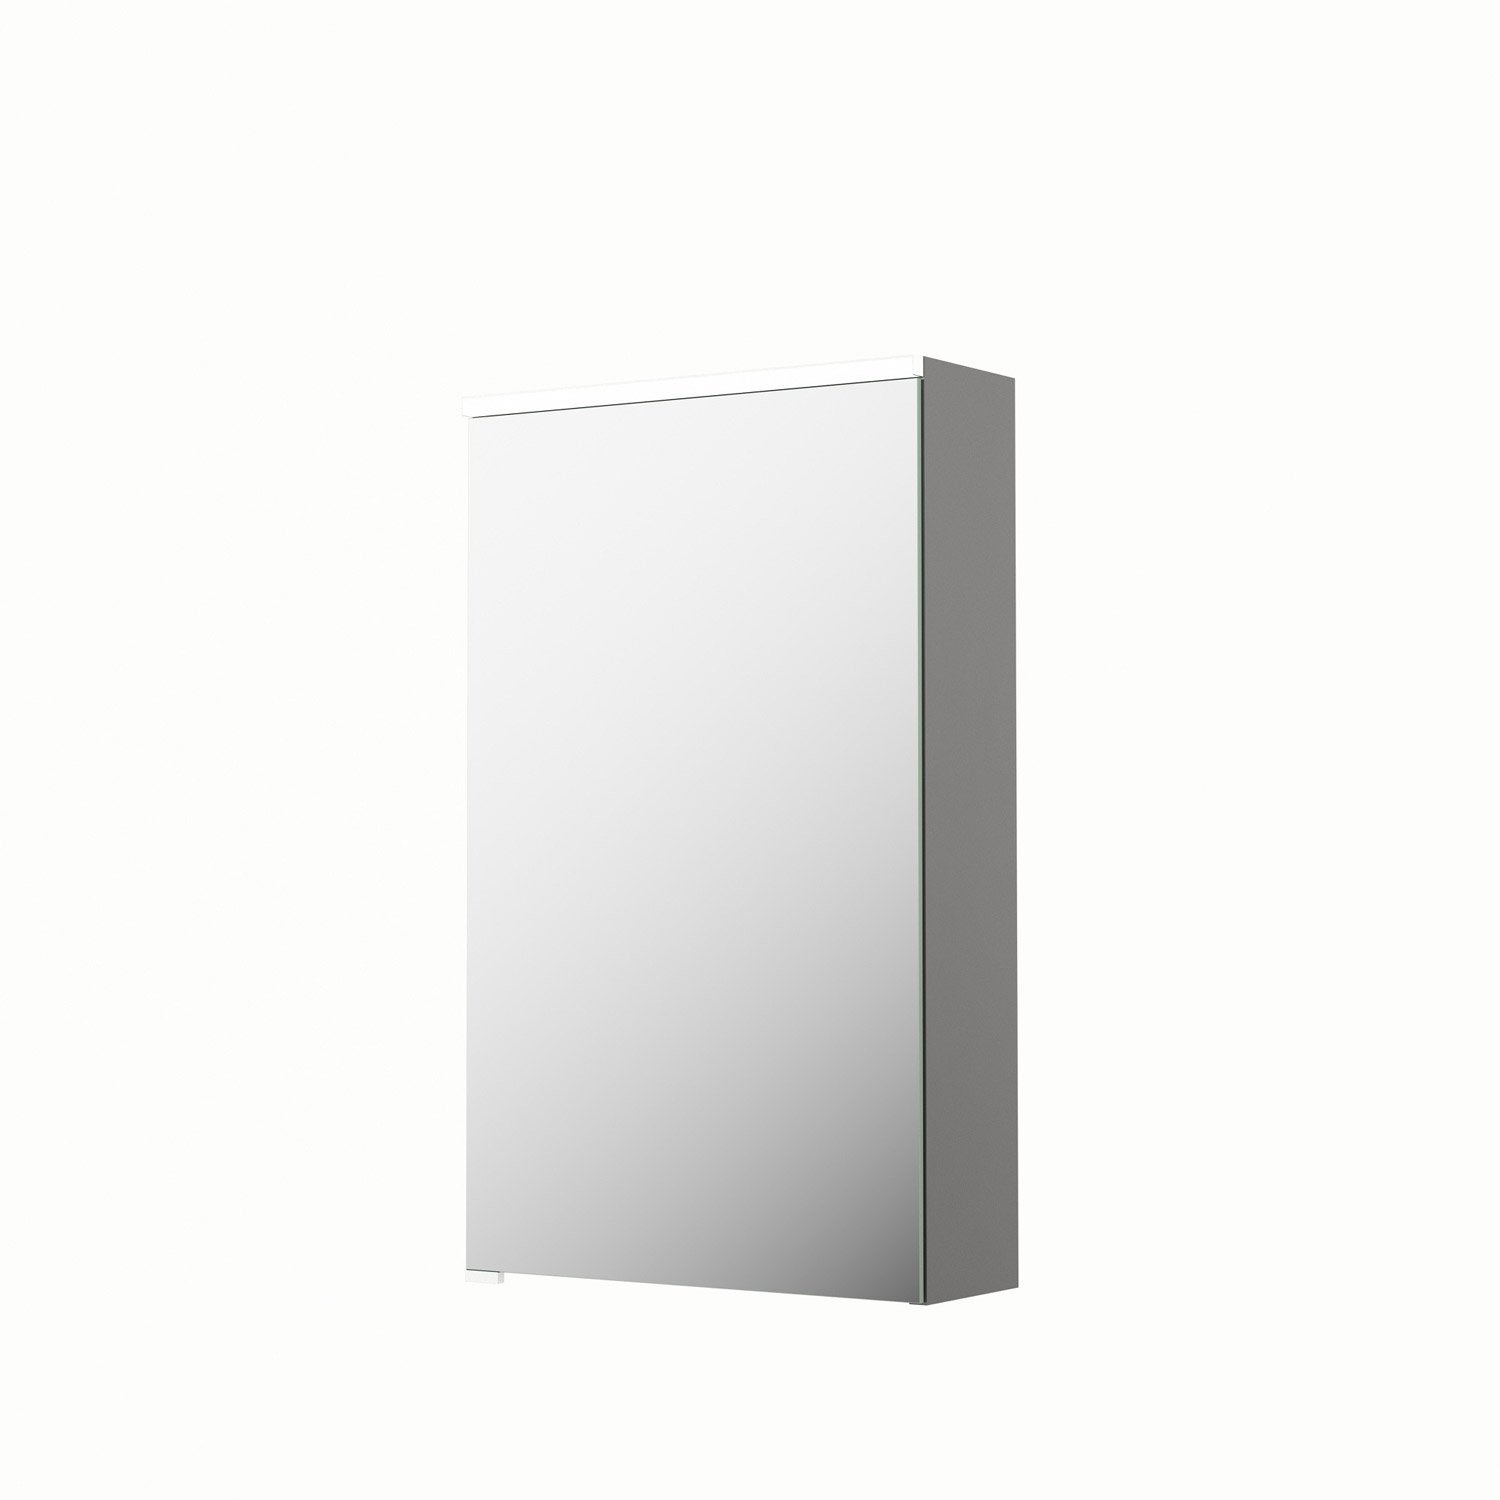 armoire de toilette lumineuse l 45 cm gris sensea neo leroy merlin. Black Bedroom Furniture Sets. Home Design Ideas